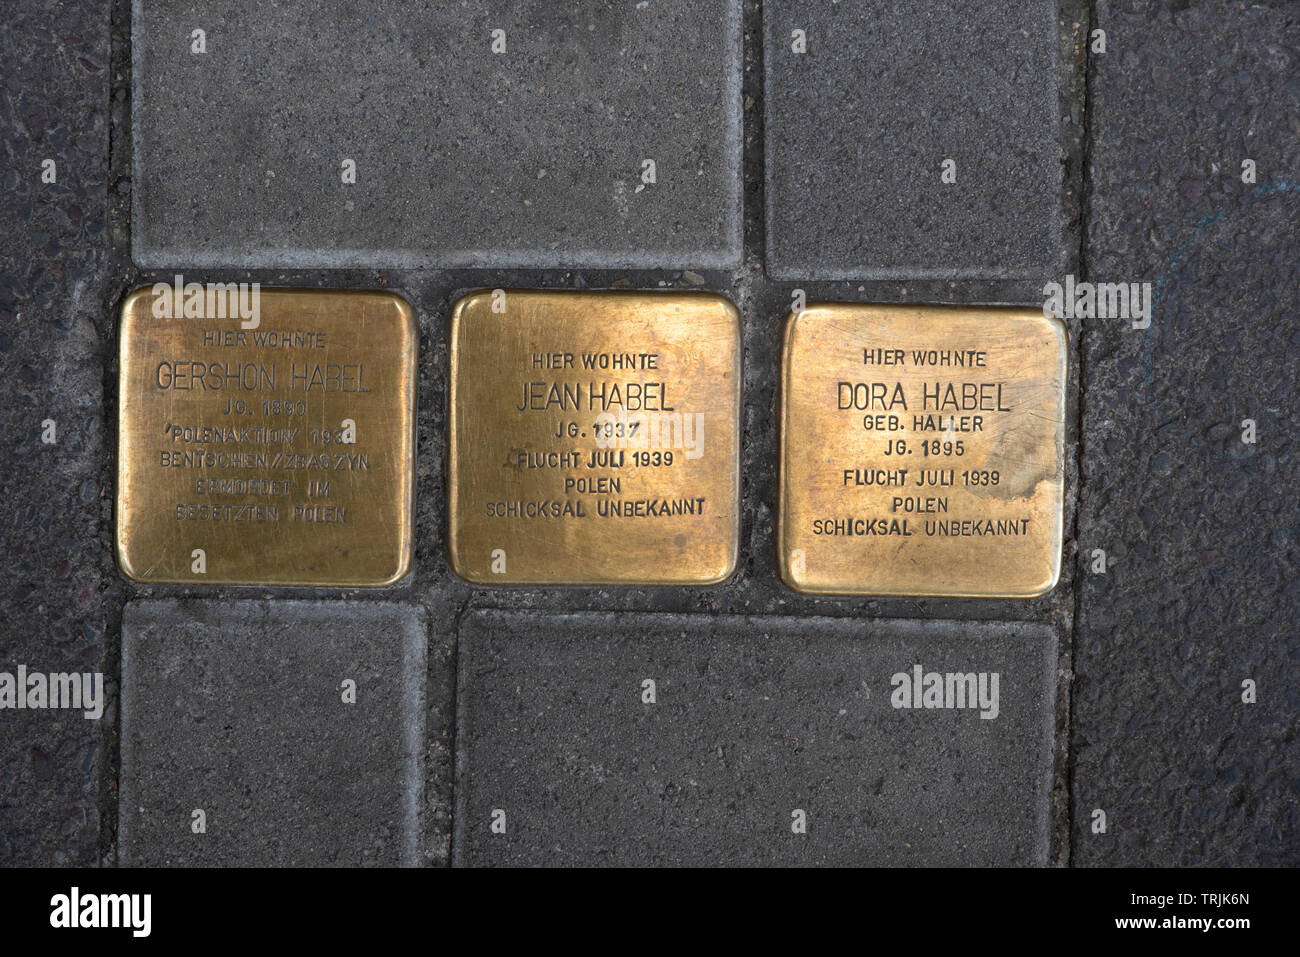 'Stumbling stones' is a project by the German artist Gunter Demnig in 1992. They commemorate individuals at the last place where they lived. - Stock Image